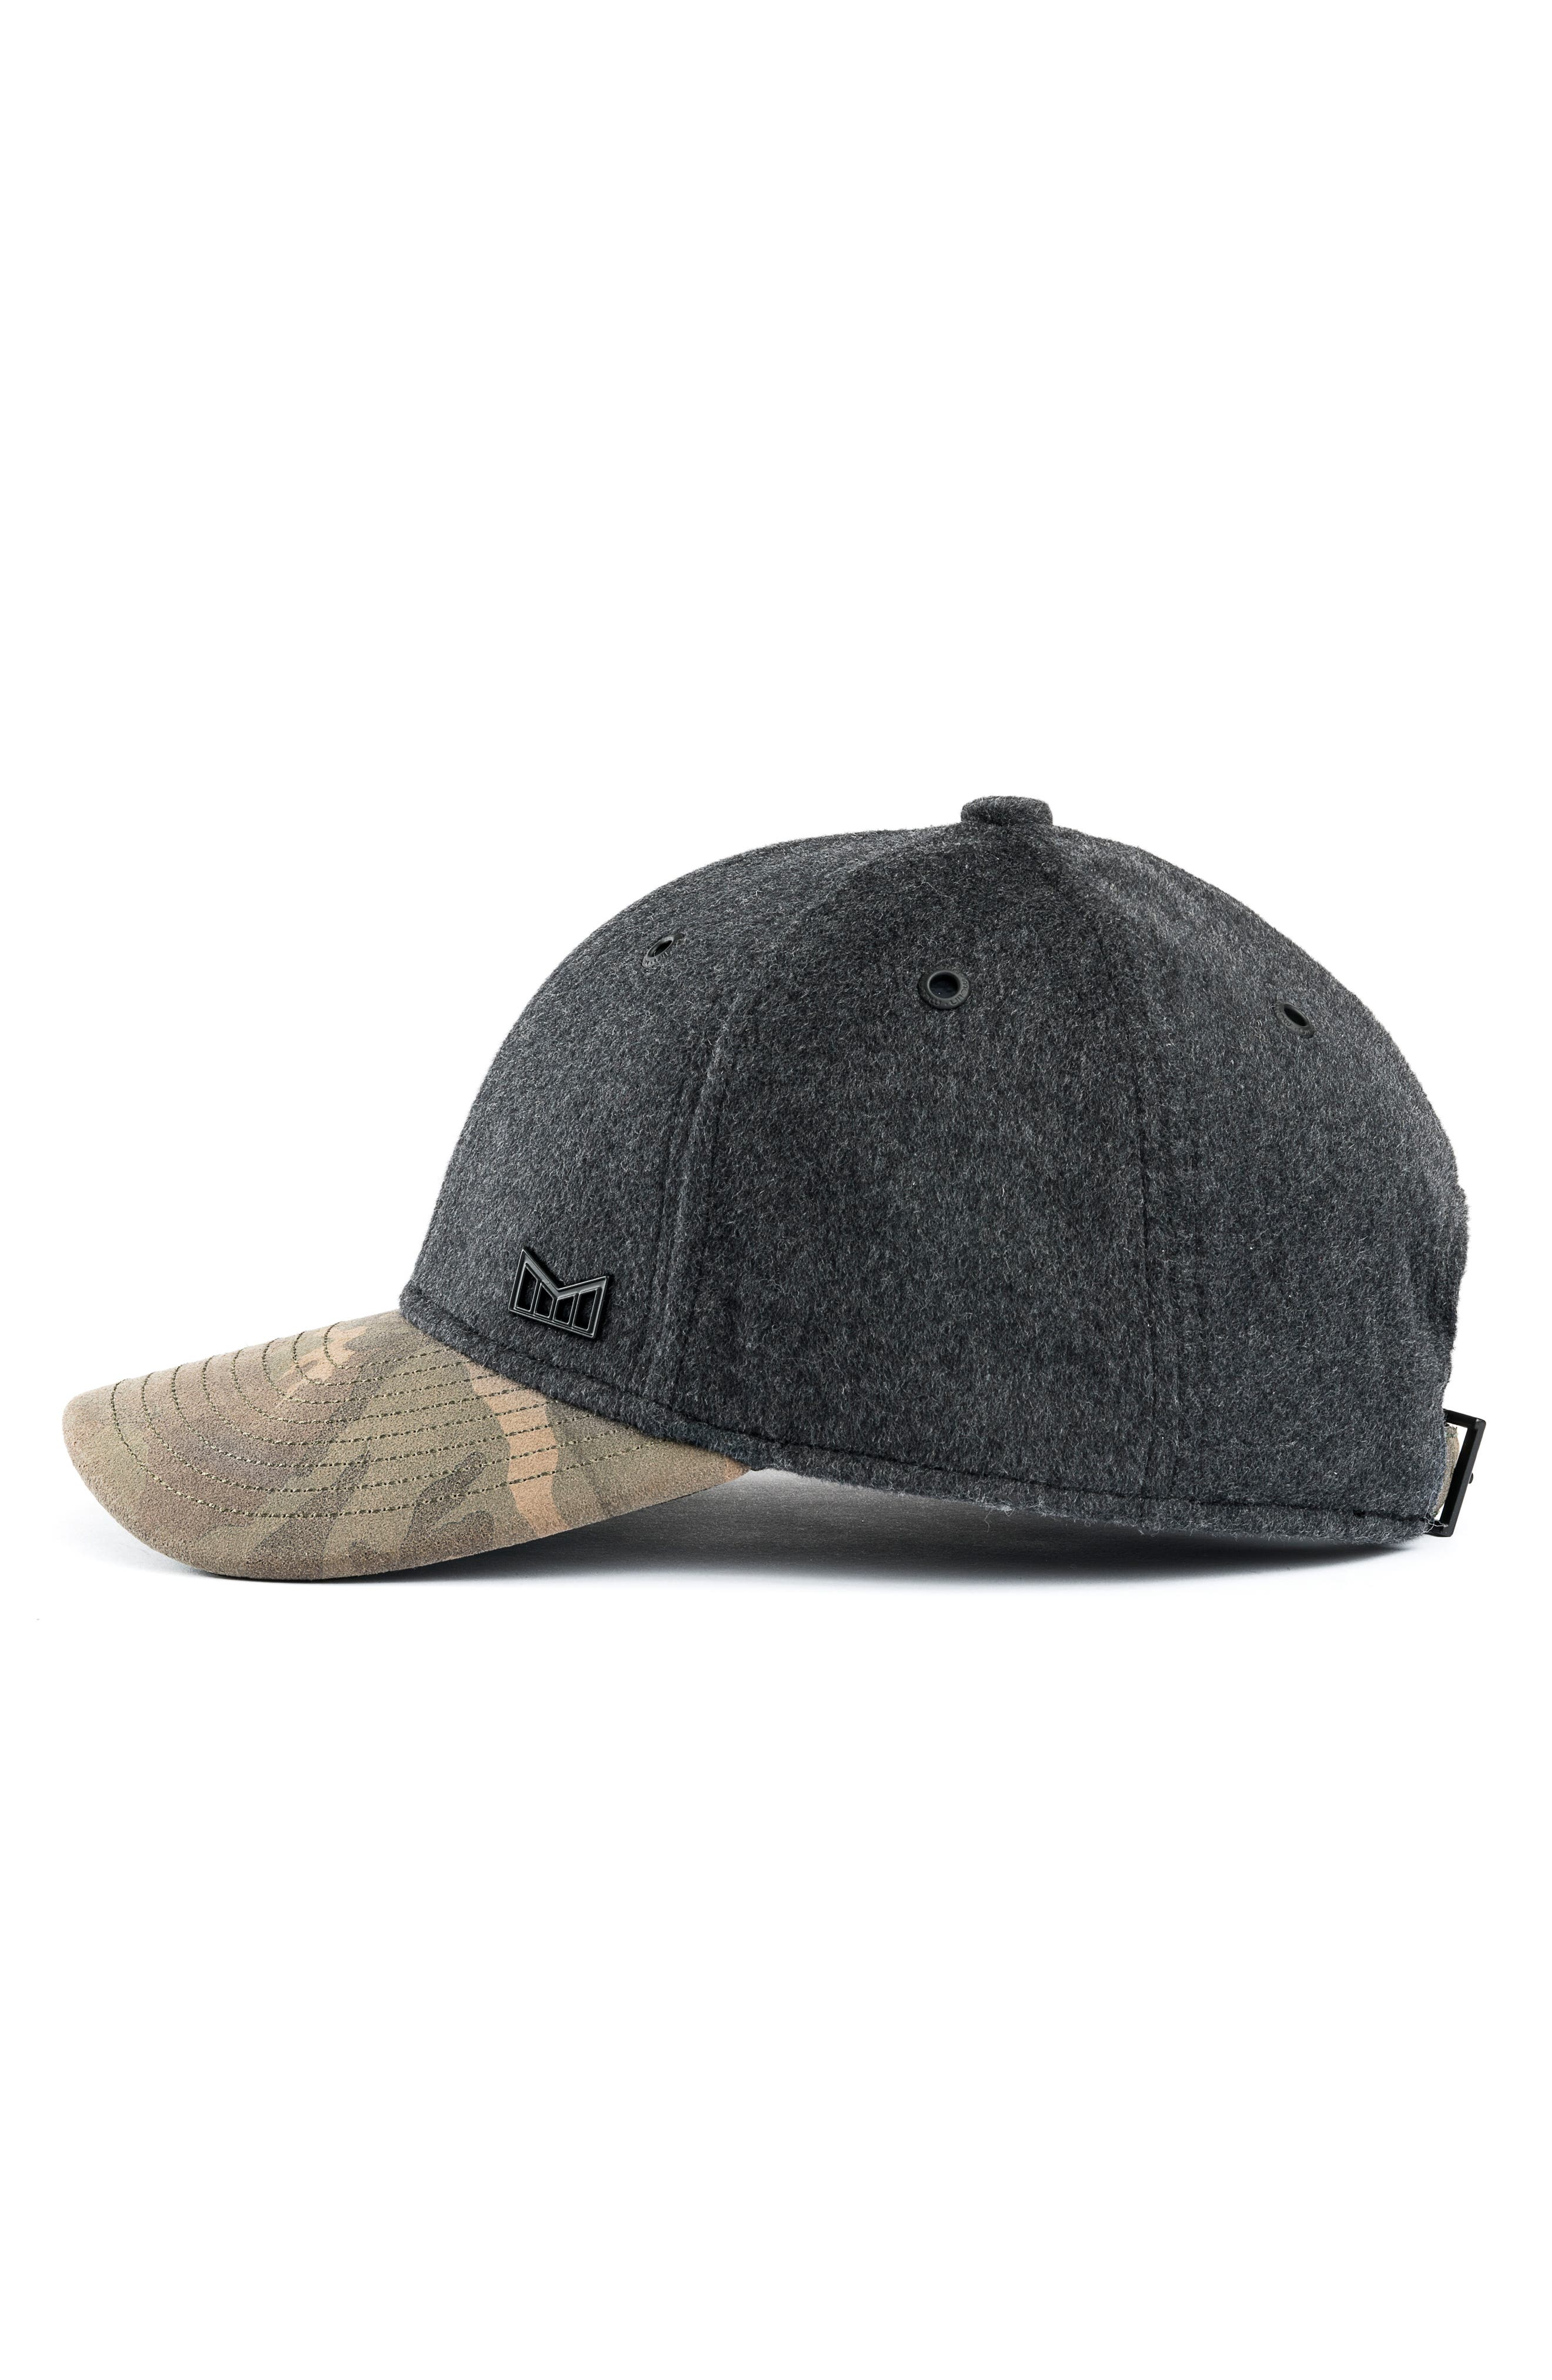 Maverick Ball Cap,                             Alternate thumbnail 4, color,                             Dark Charcoal